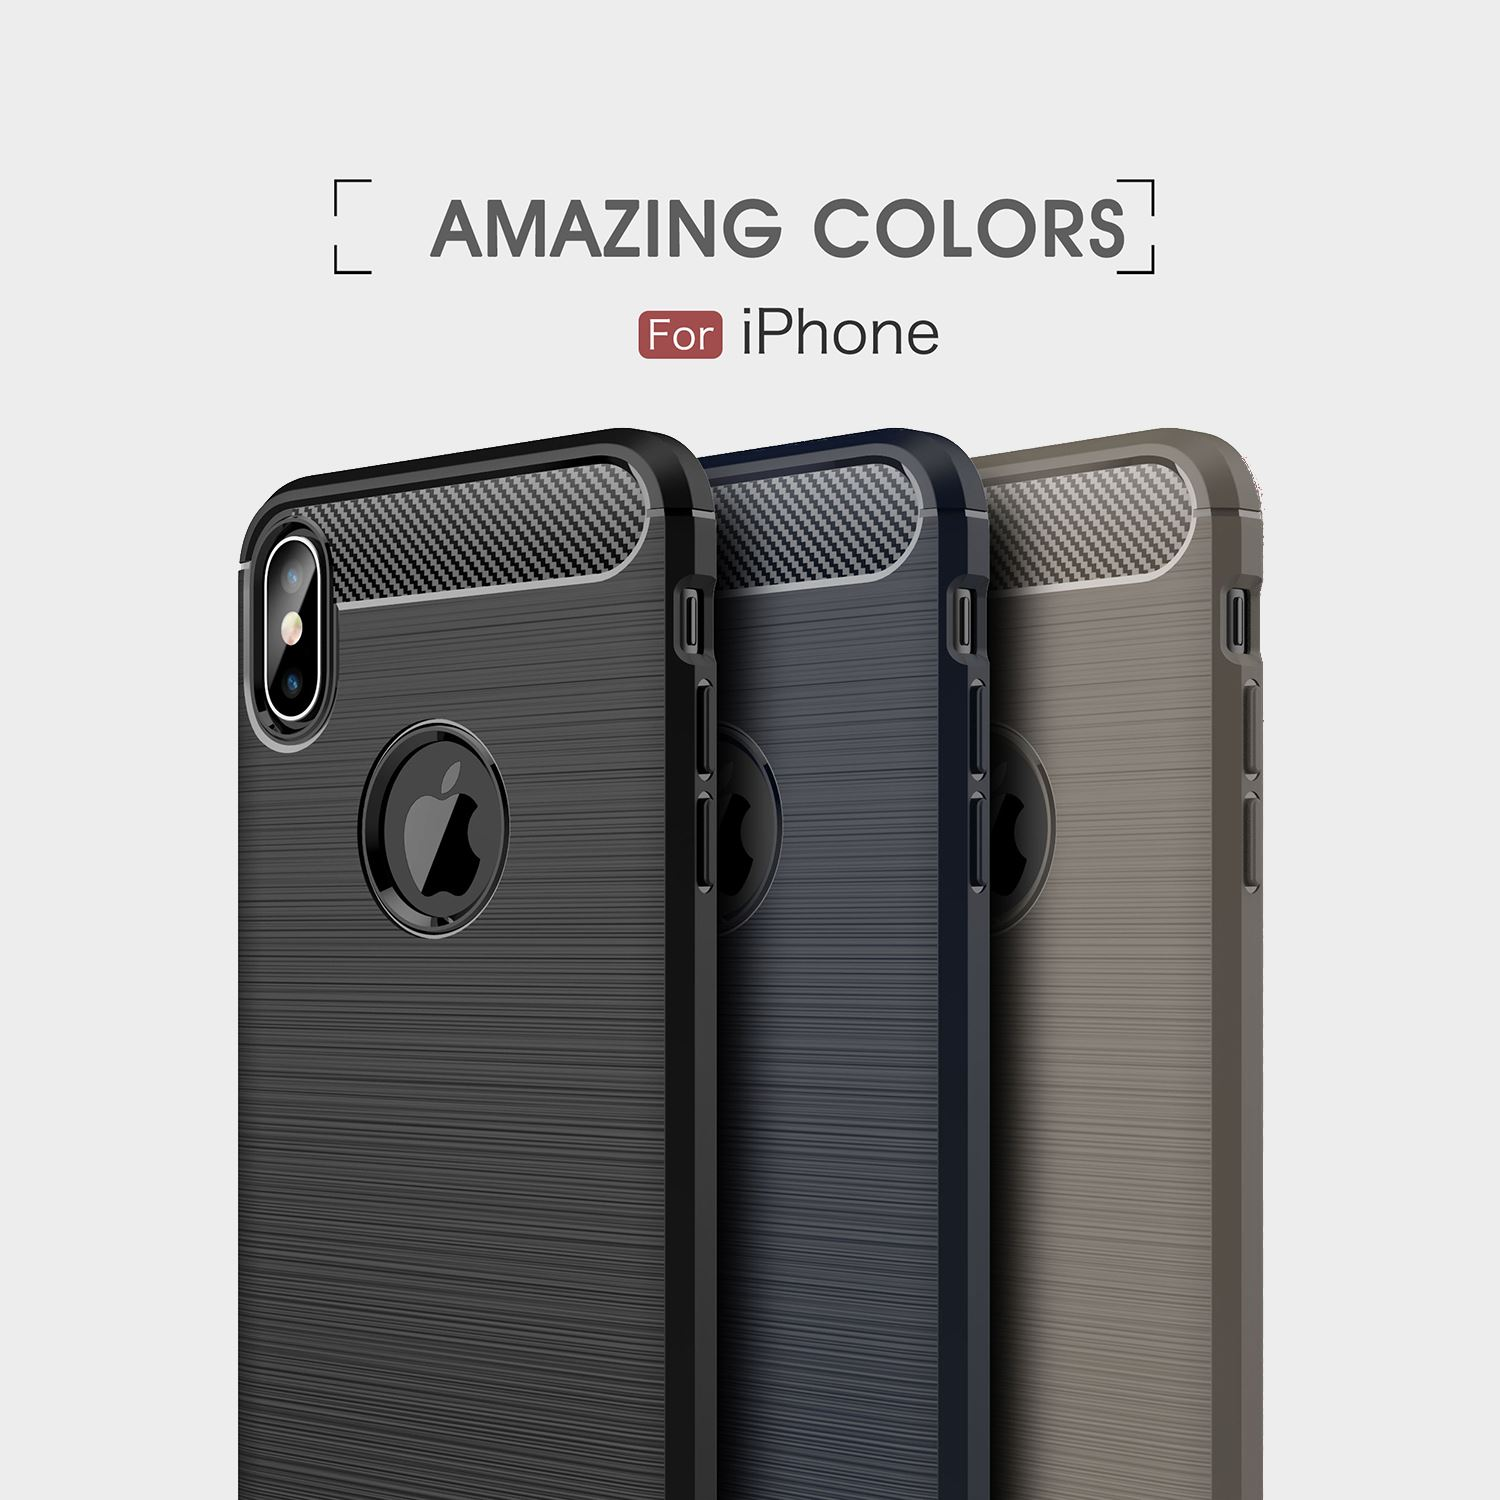 miniature 17 - For Apple iPhone XR Xs Max X 8 7 Plus 6 5 Se 2020 Case Cover New Phone Proof